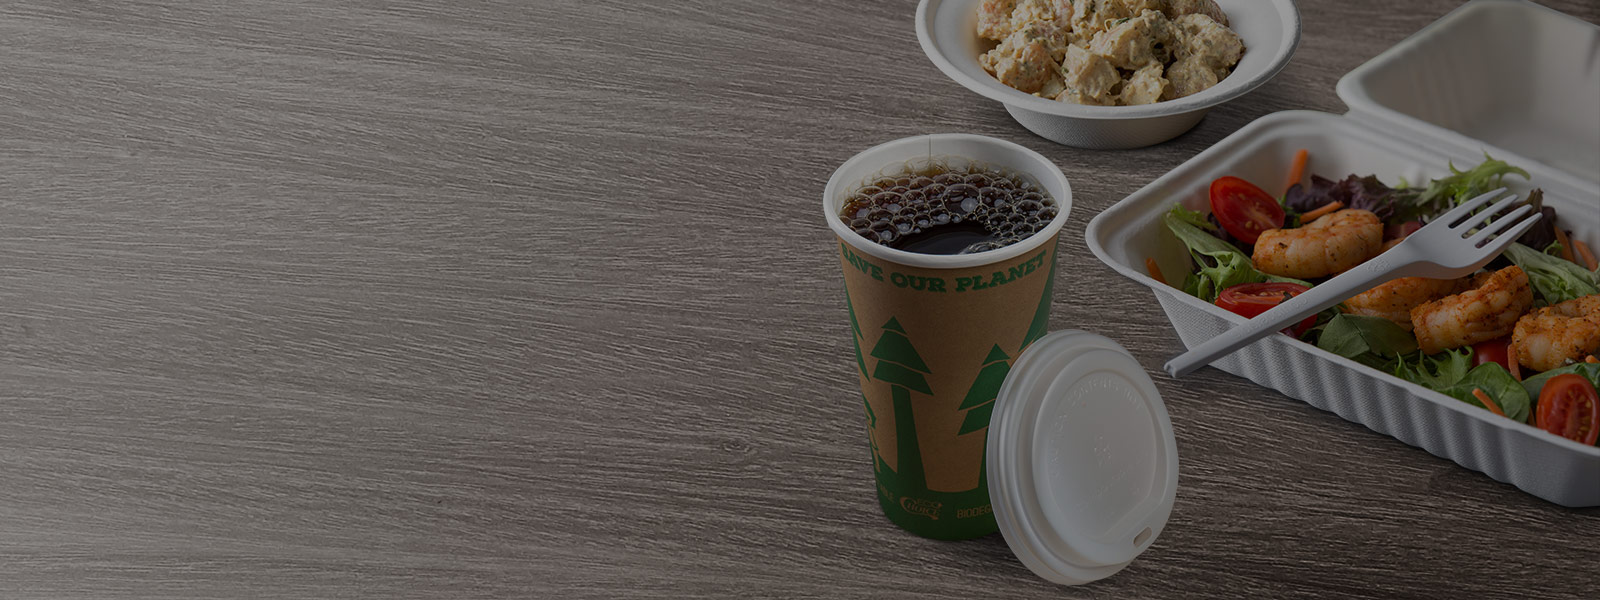 Use Ecochoice Eco-Friendly Products to Take a Green Initiative with Your Cafe or Dining Hall